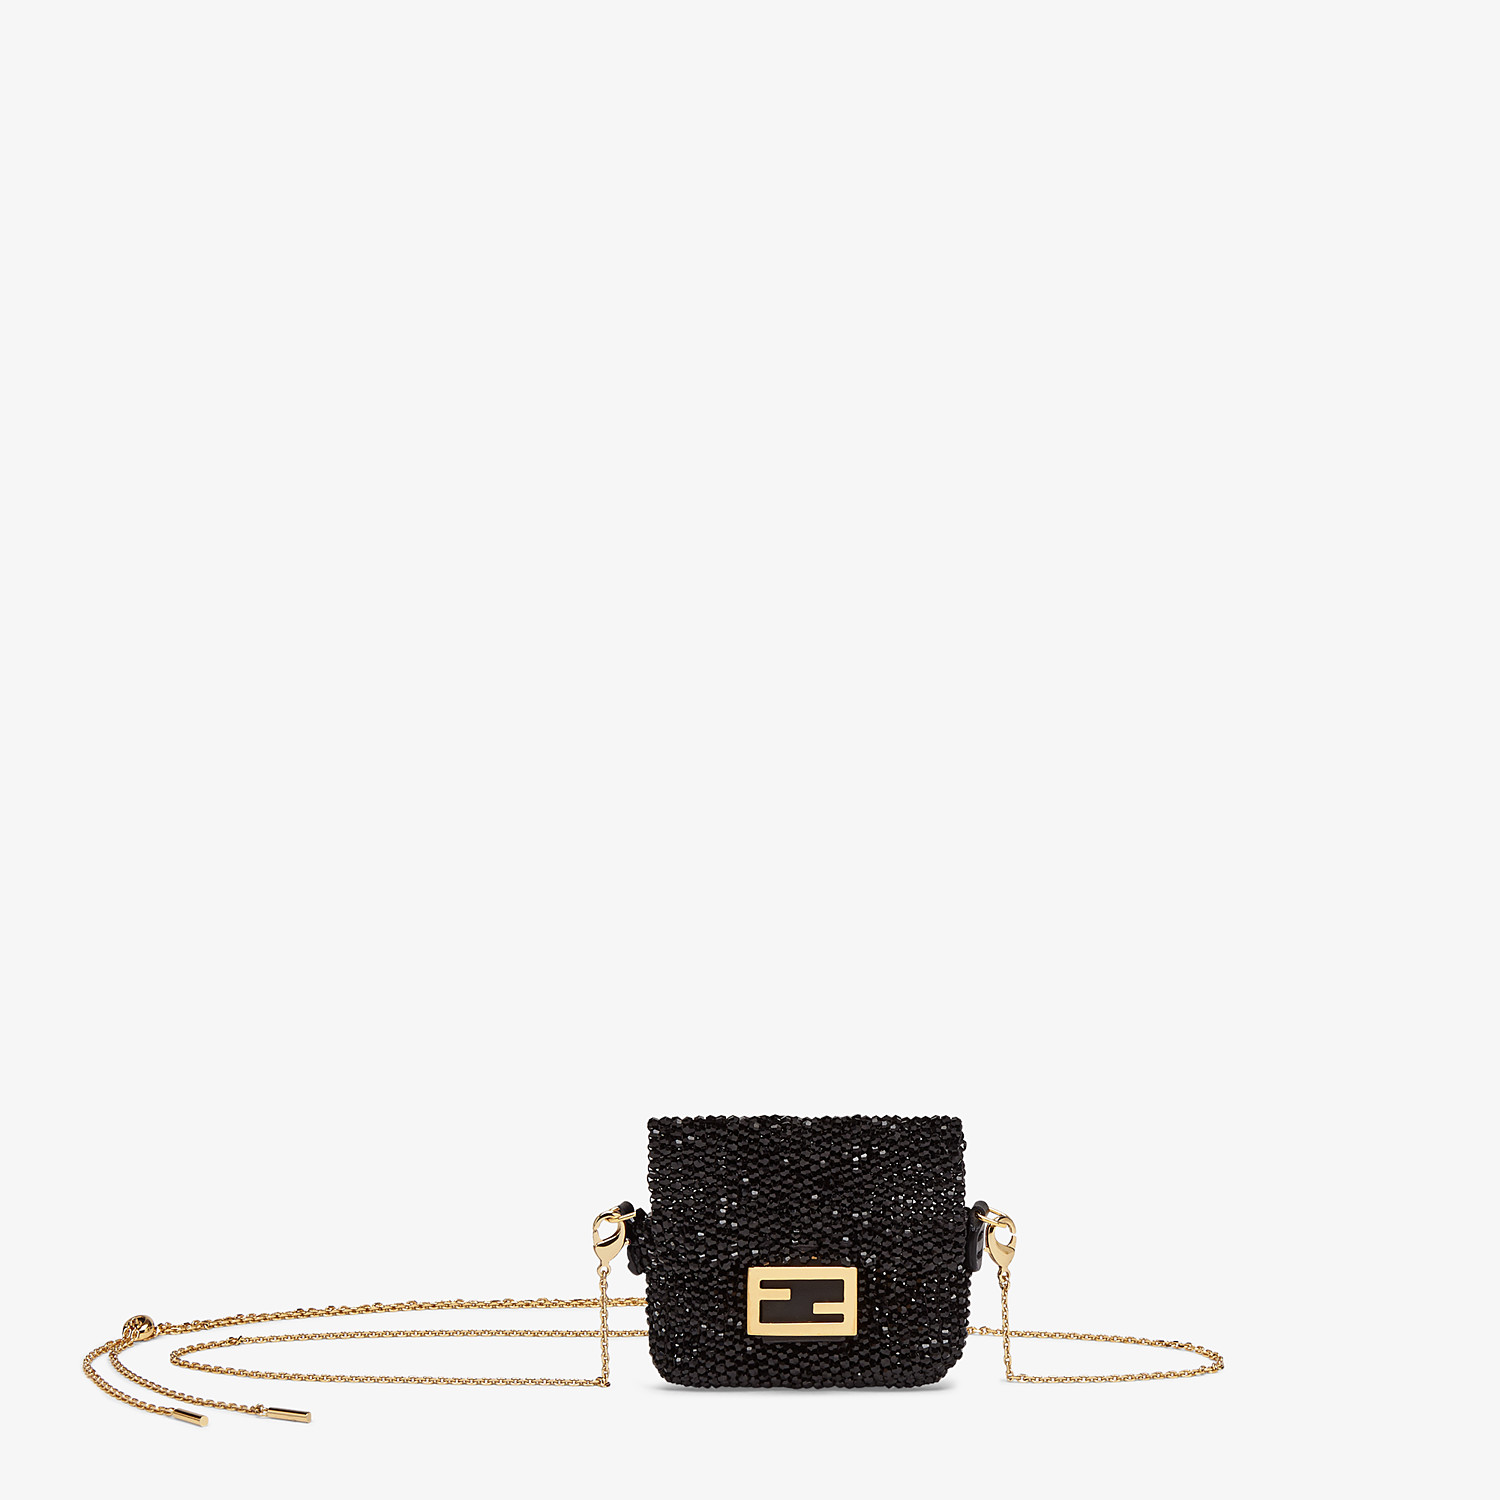 FENDI PICO BAGUETTE CHARM - Charm with black crystals - view 1 detail